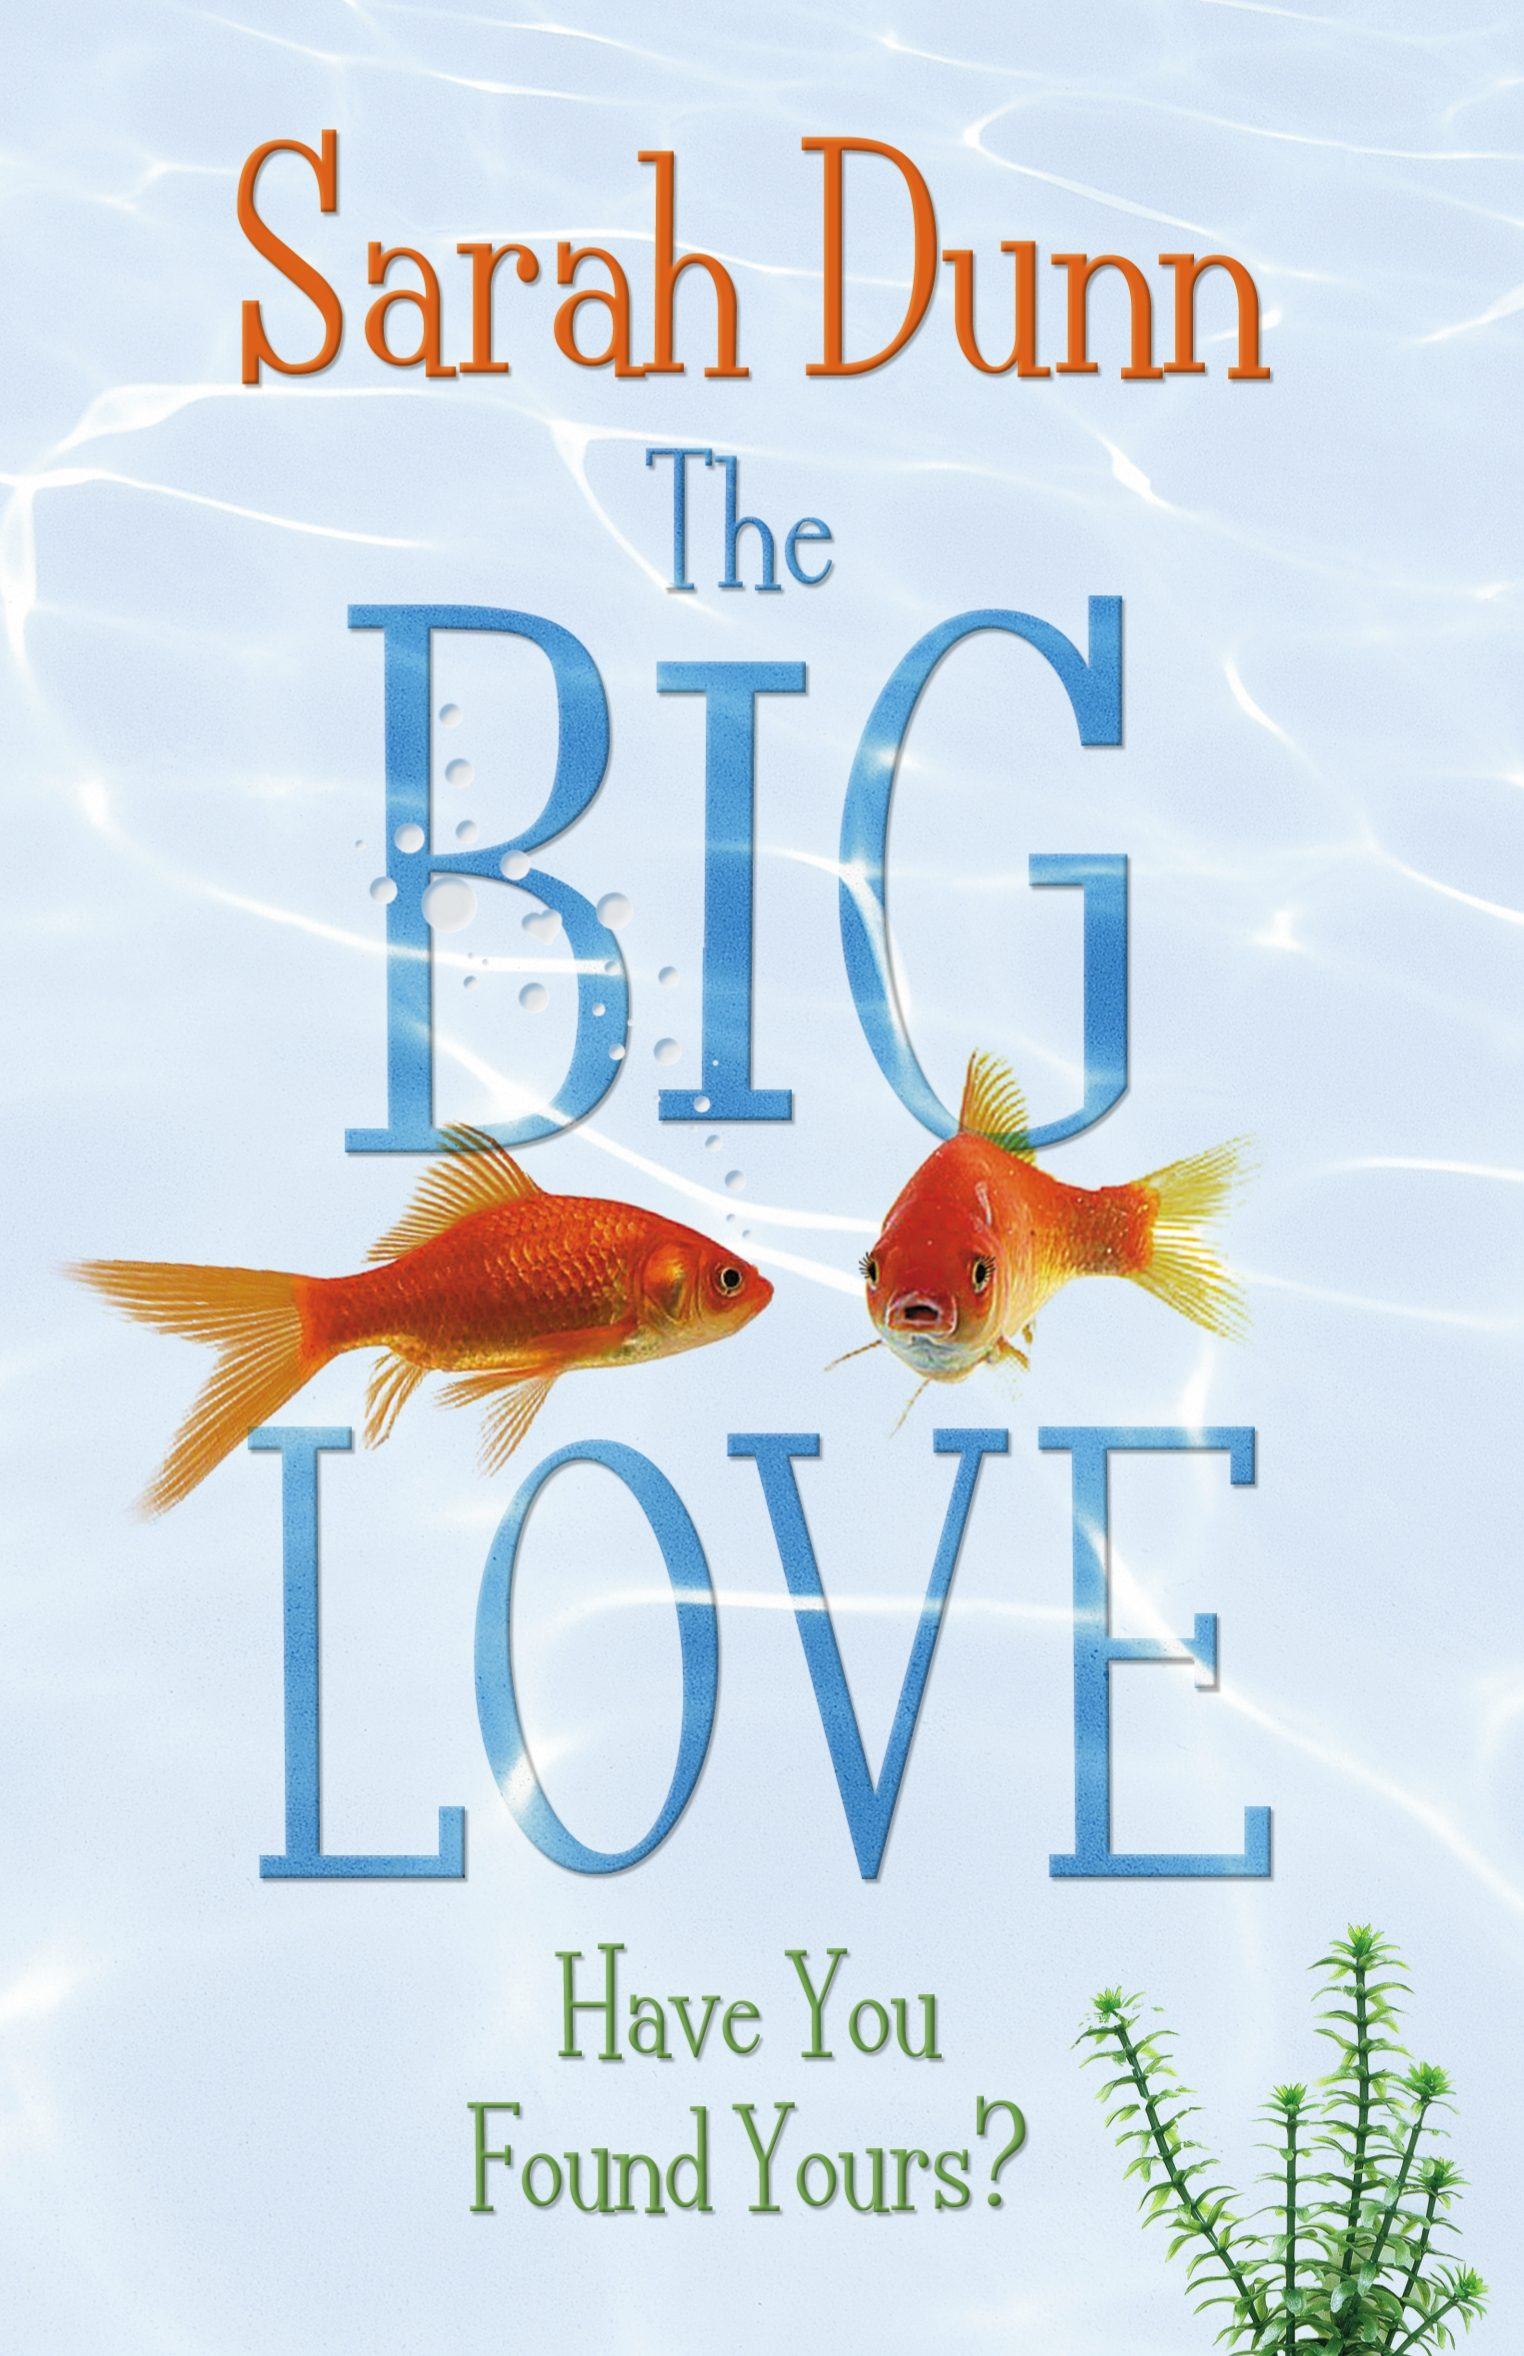 Big Fish Libro The Big Love Ebook Sarah Dunn Descargar Libro Pdf O Epub 9781405918589